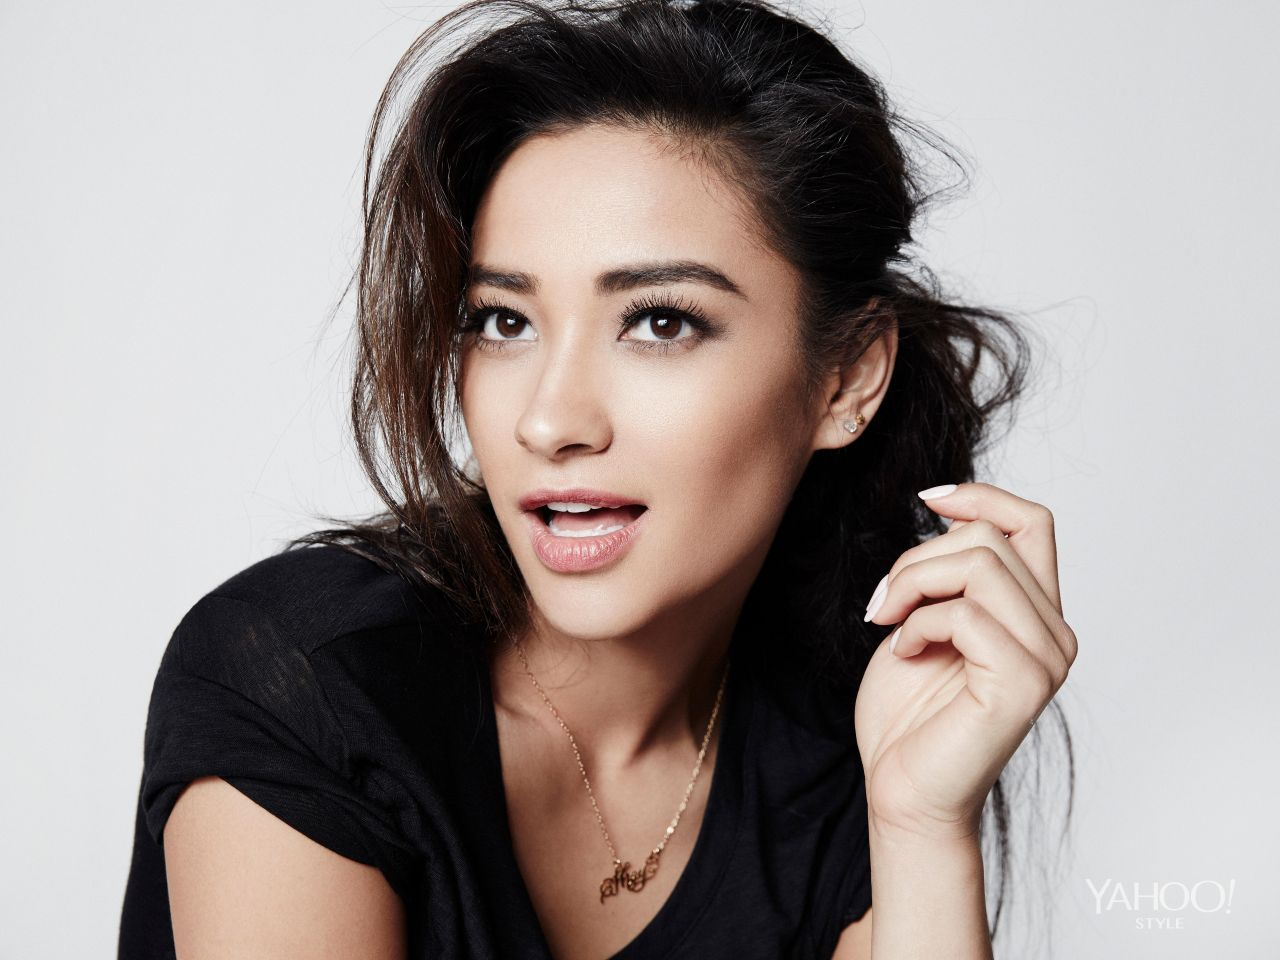 Shay Mitchell - 2014 Photoshoot for Yahoo Style